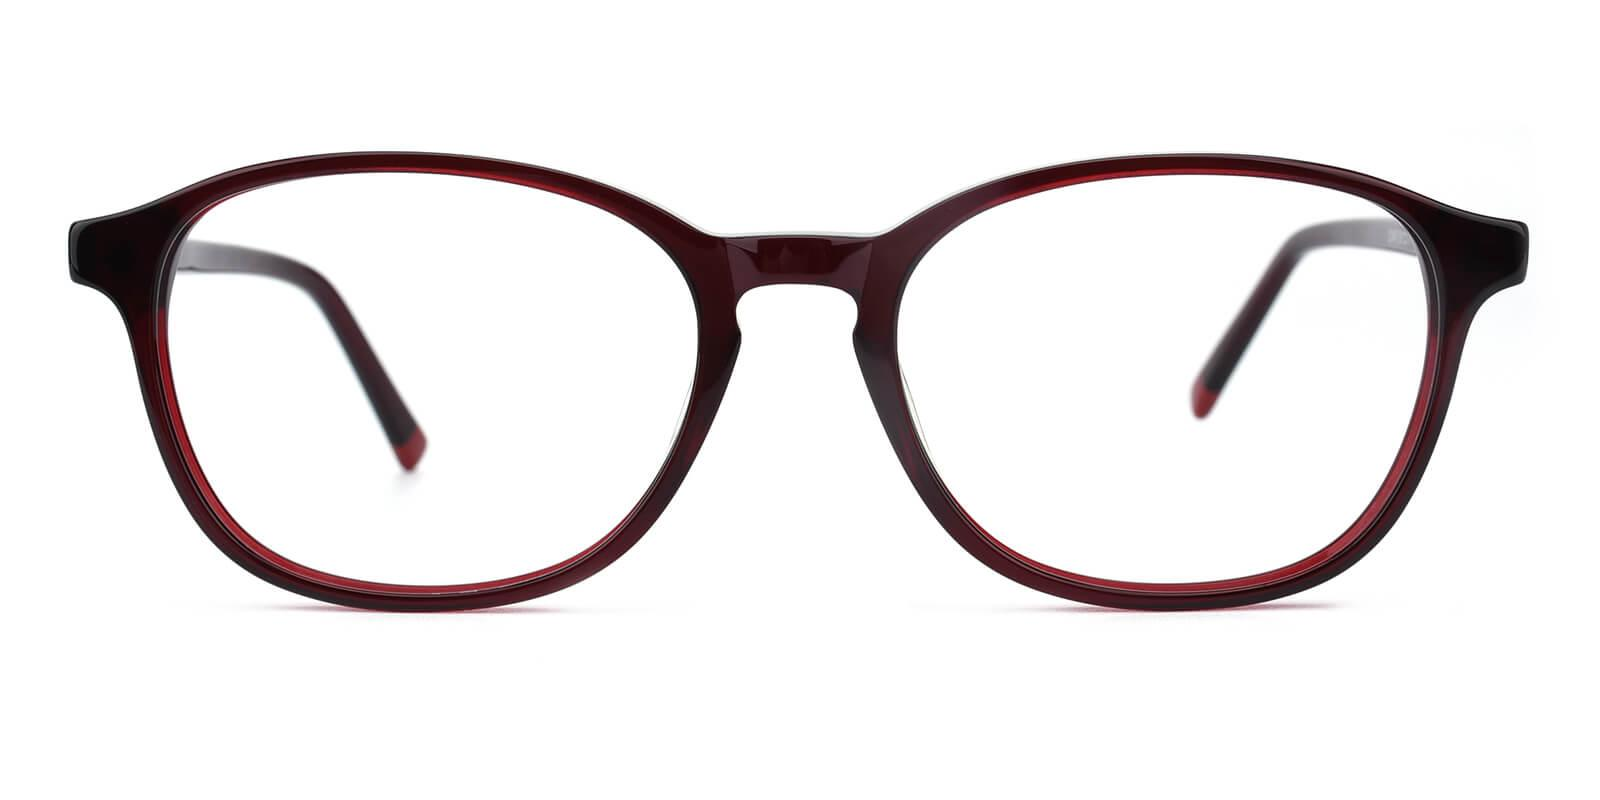 Lisbon-Brown-Square-Acetate-Eyeglasses-detail